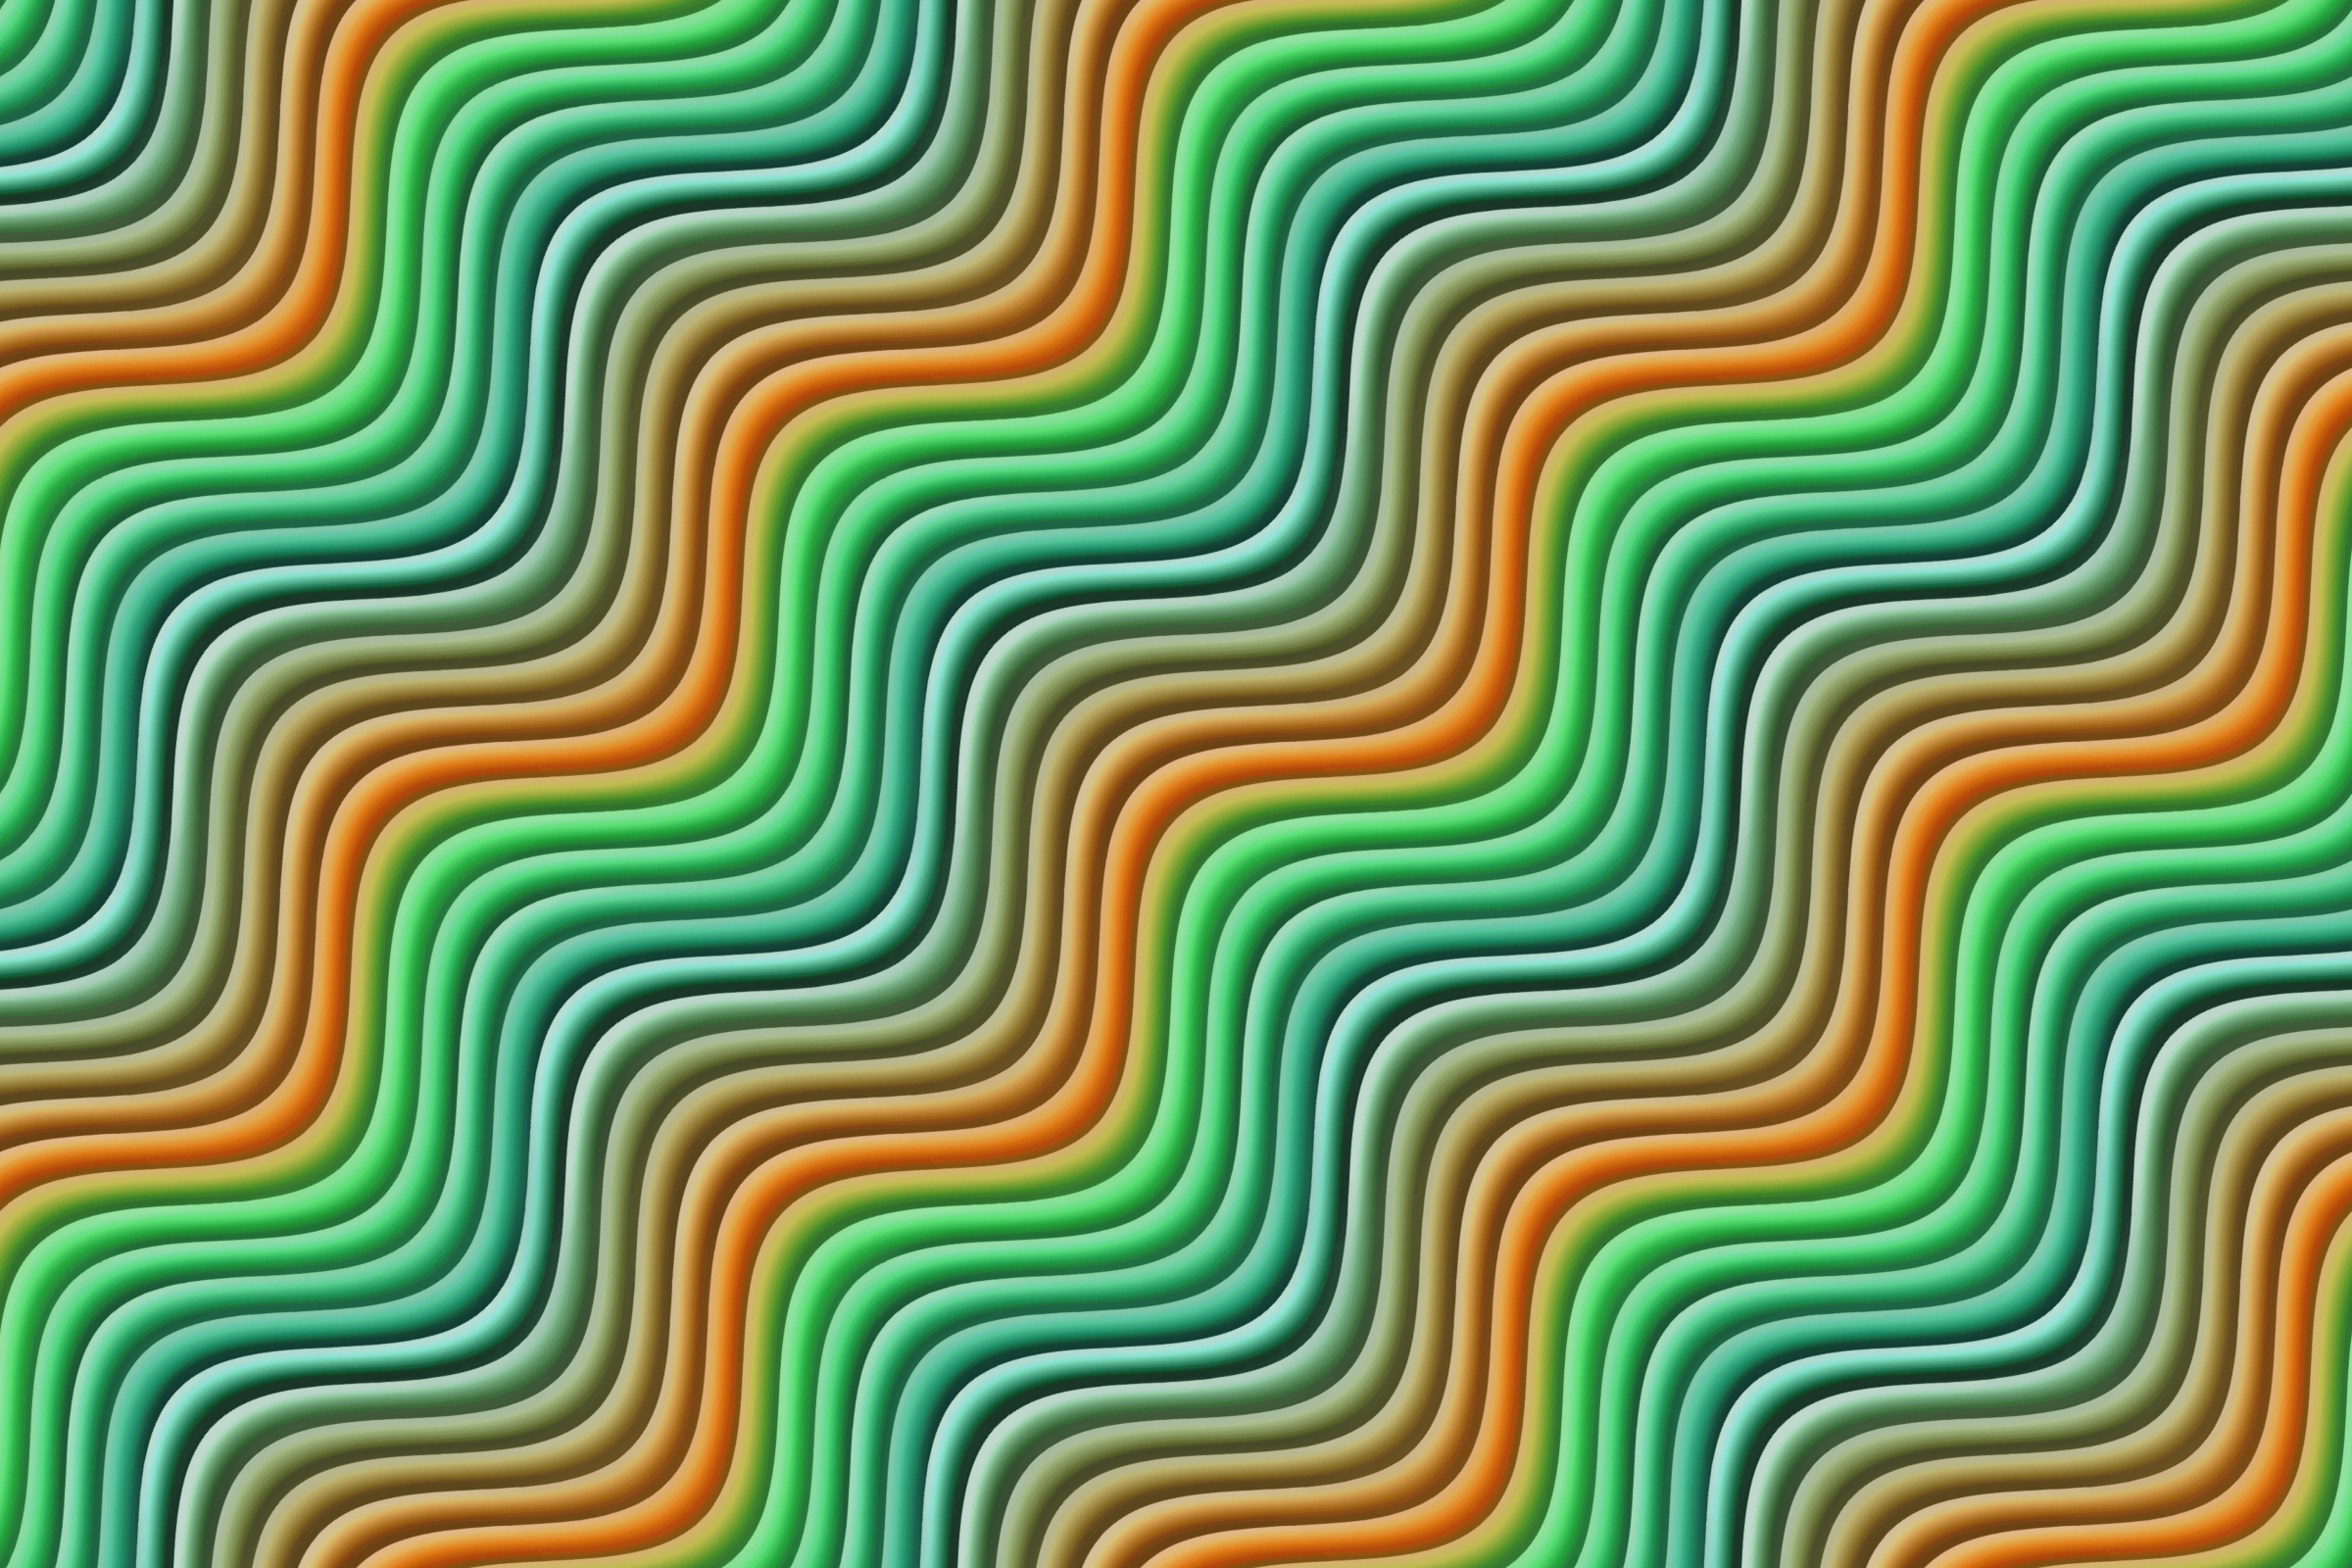 Wavy background 8 (colour 4) by Firkin